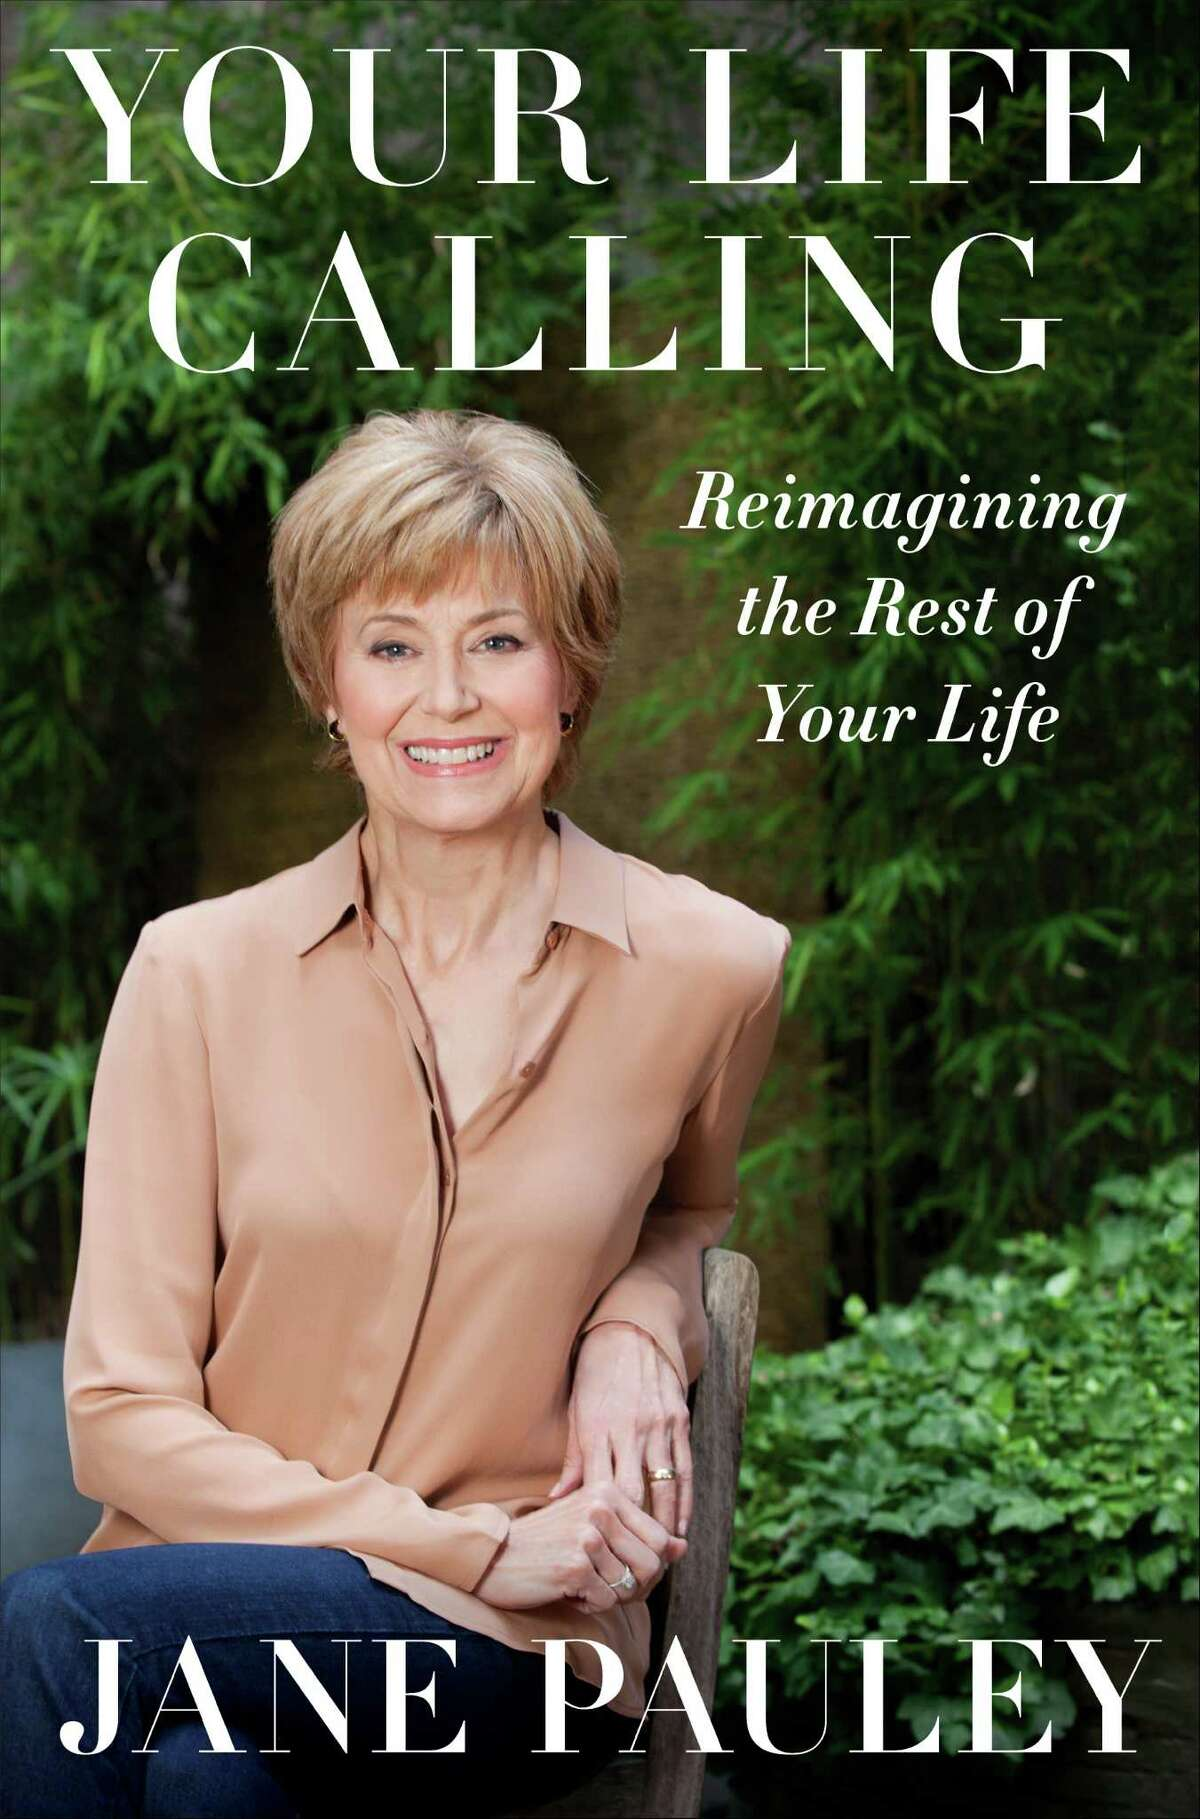 Jane Pauley's new book is based on a series of